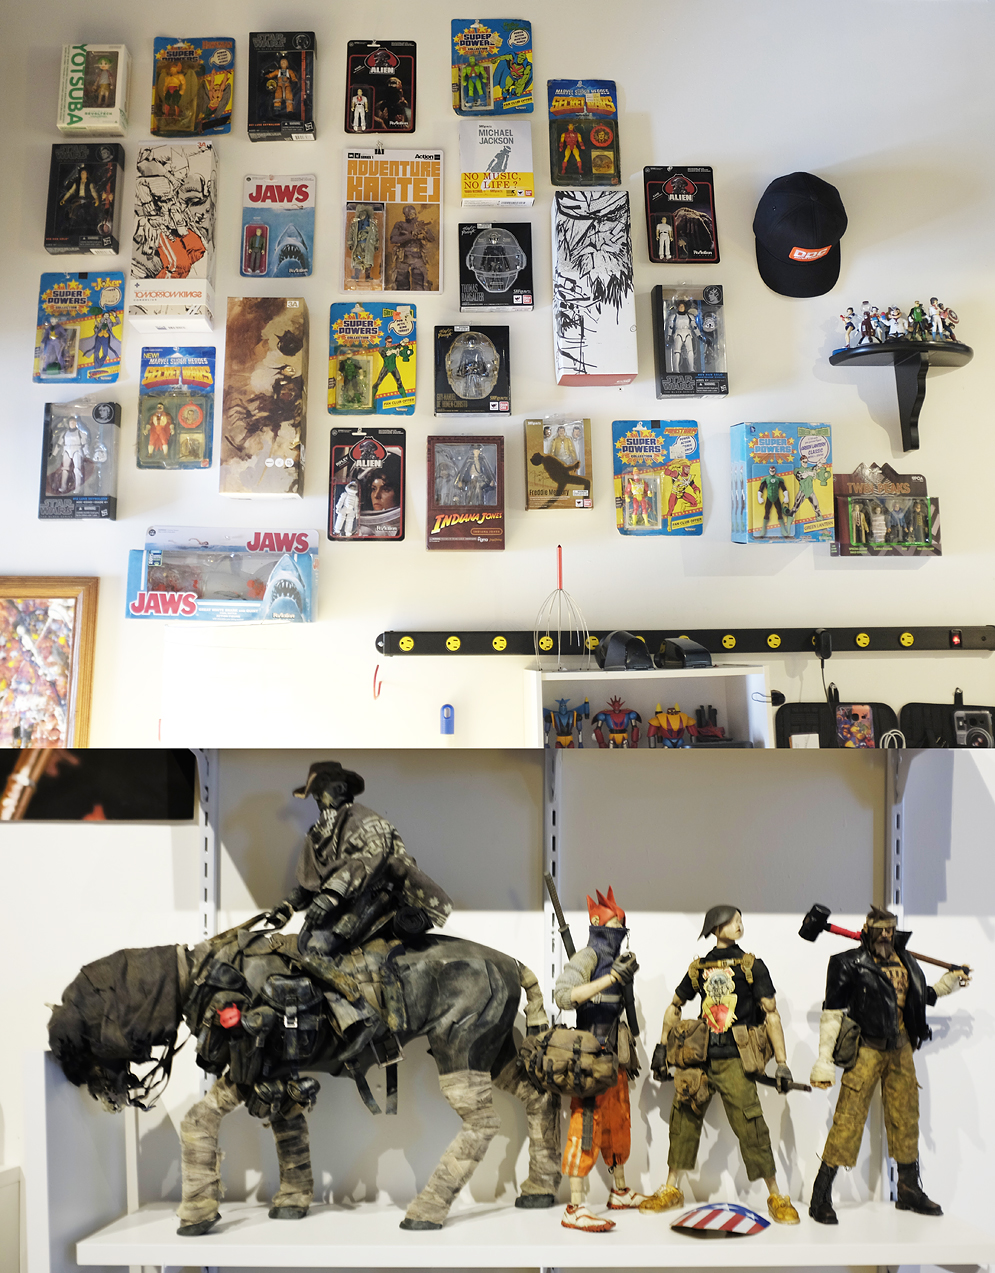 toys hanging on studio wall and displayed on shelf